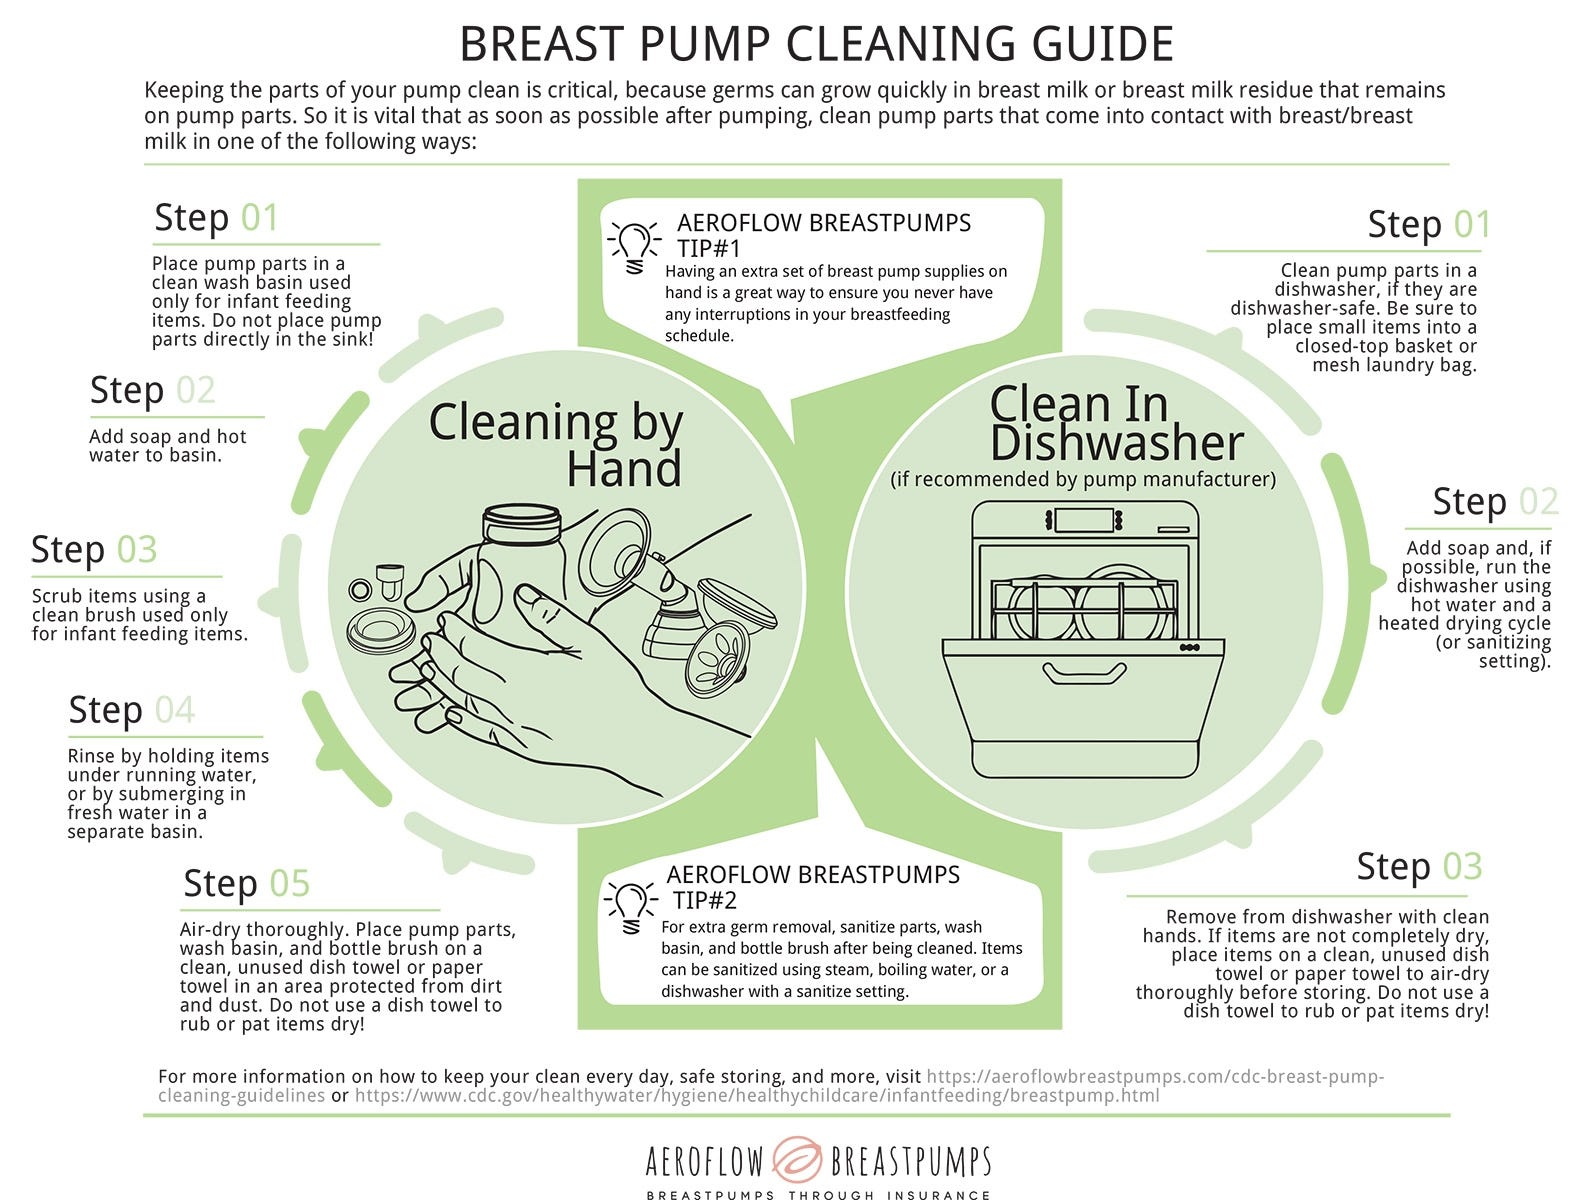 Pumping Room Makeover Checklist